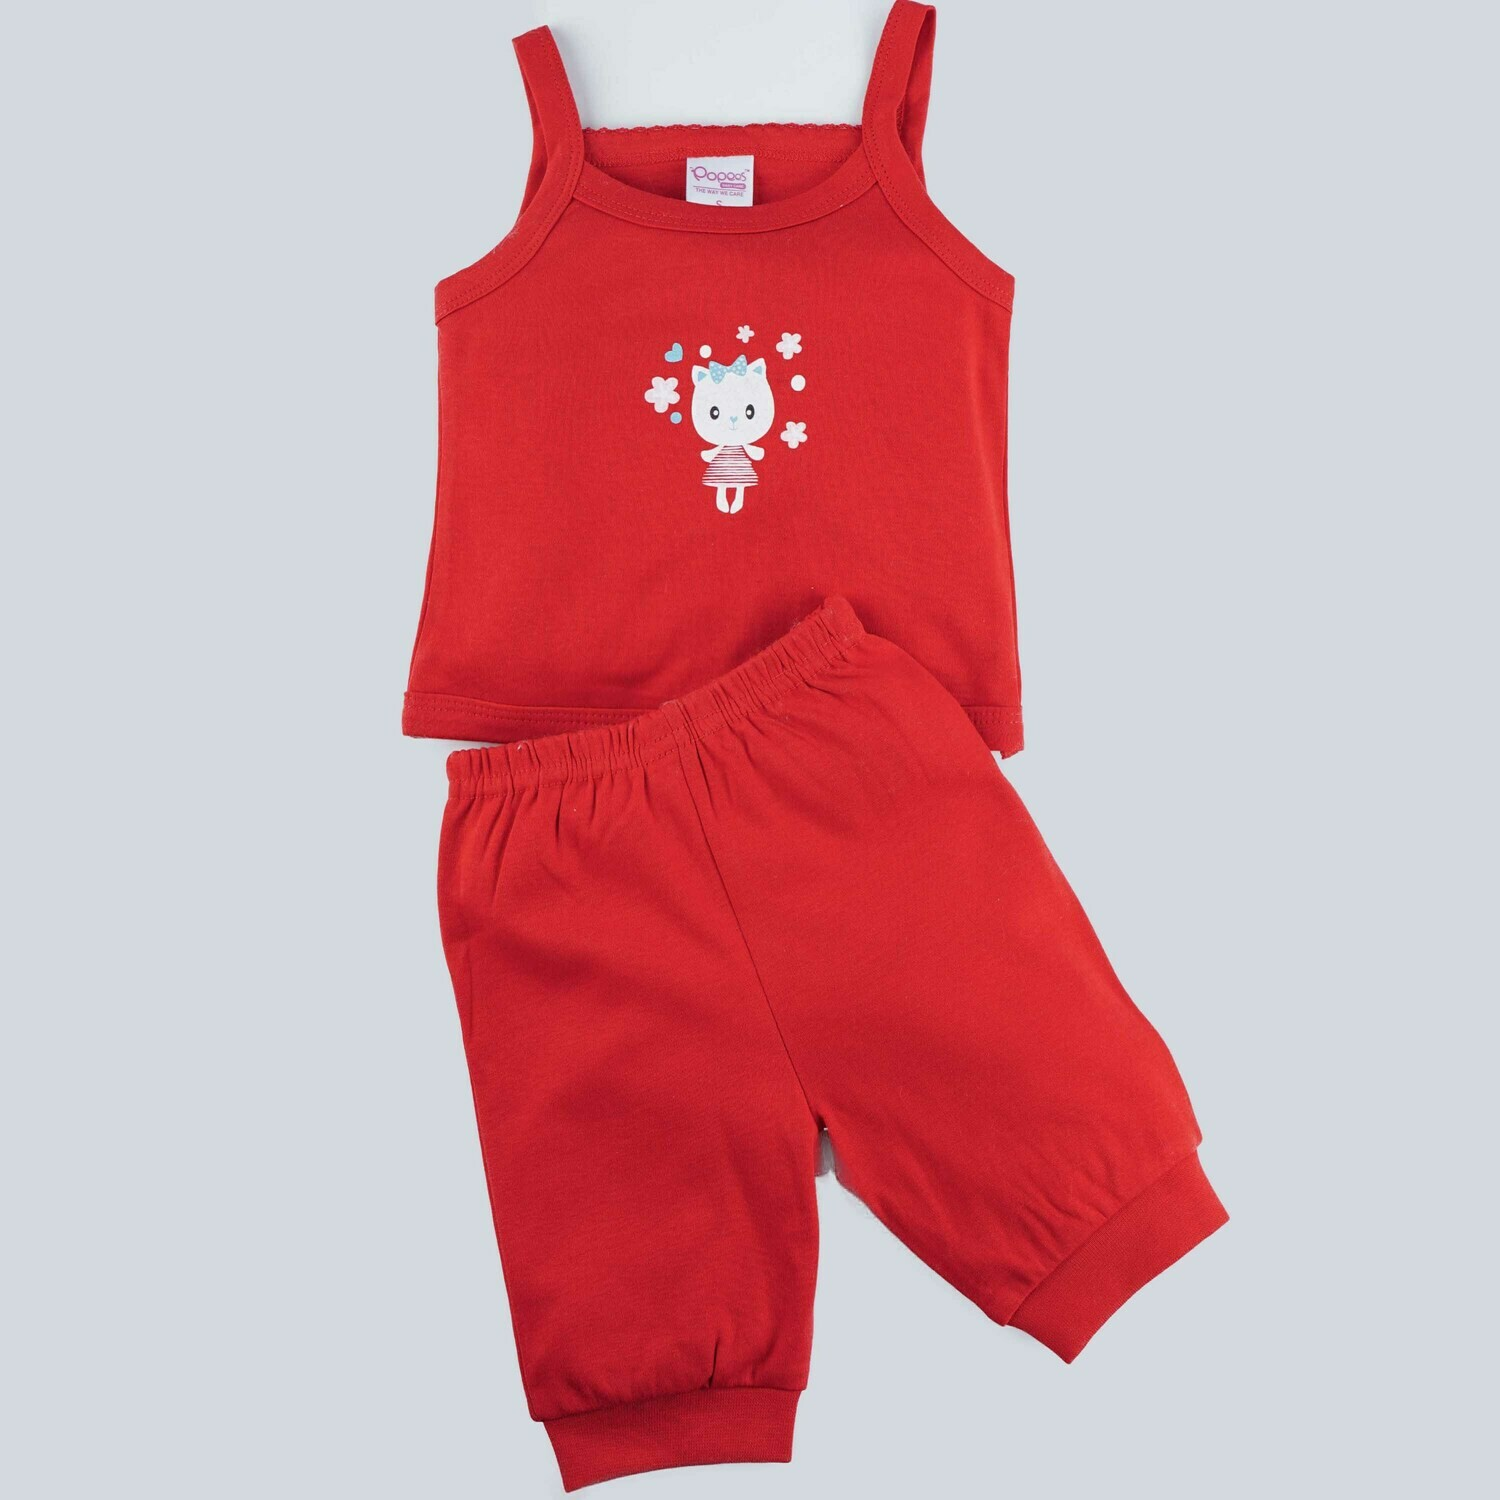 Richy Red Strappy Sleeveless Top with Shorts for Girls